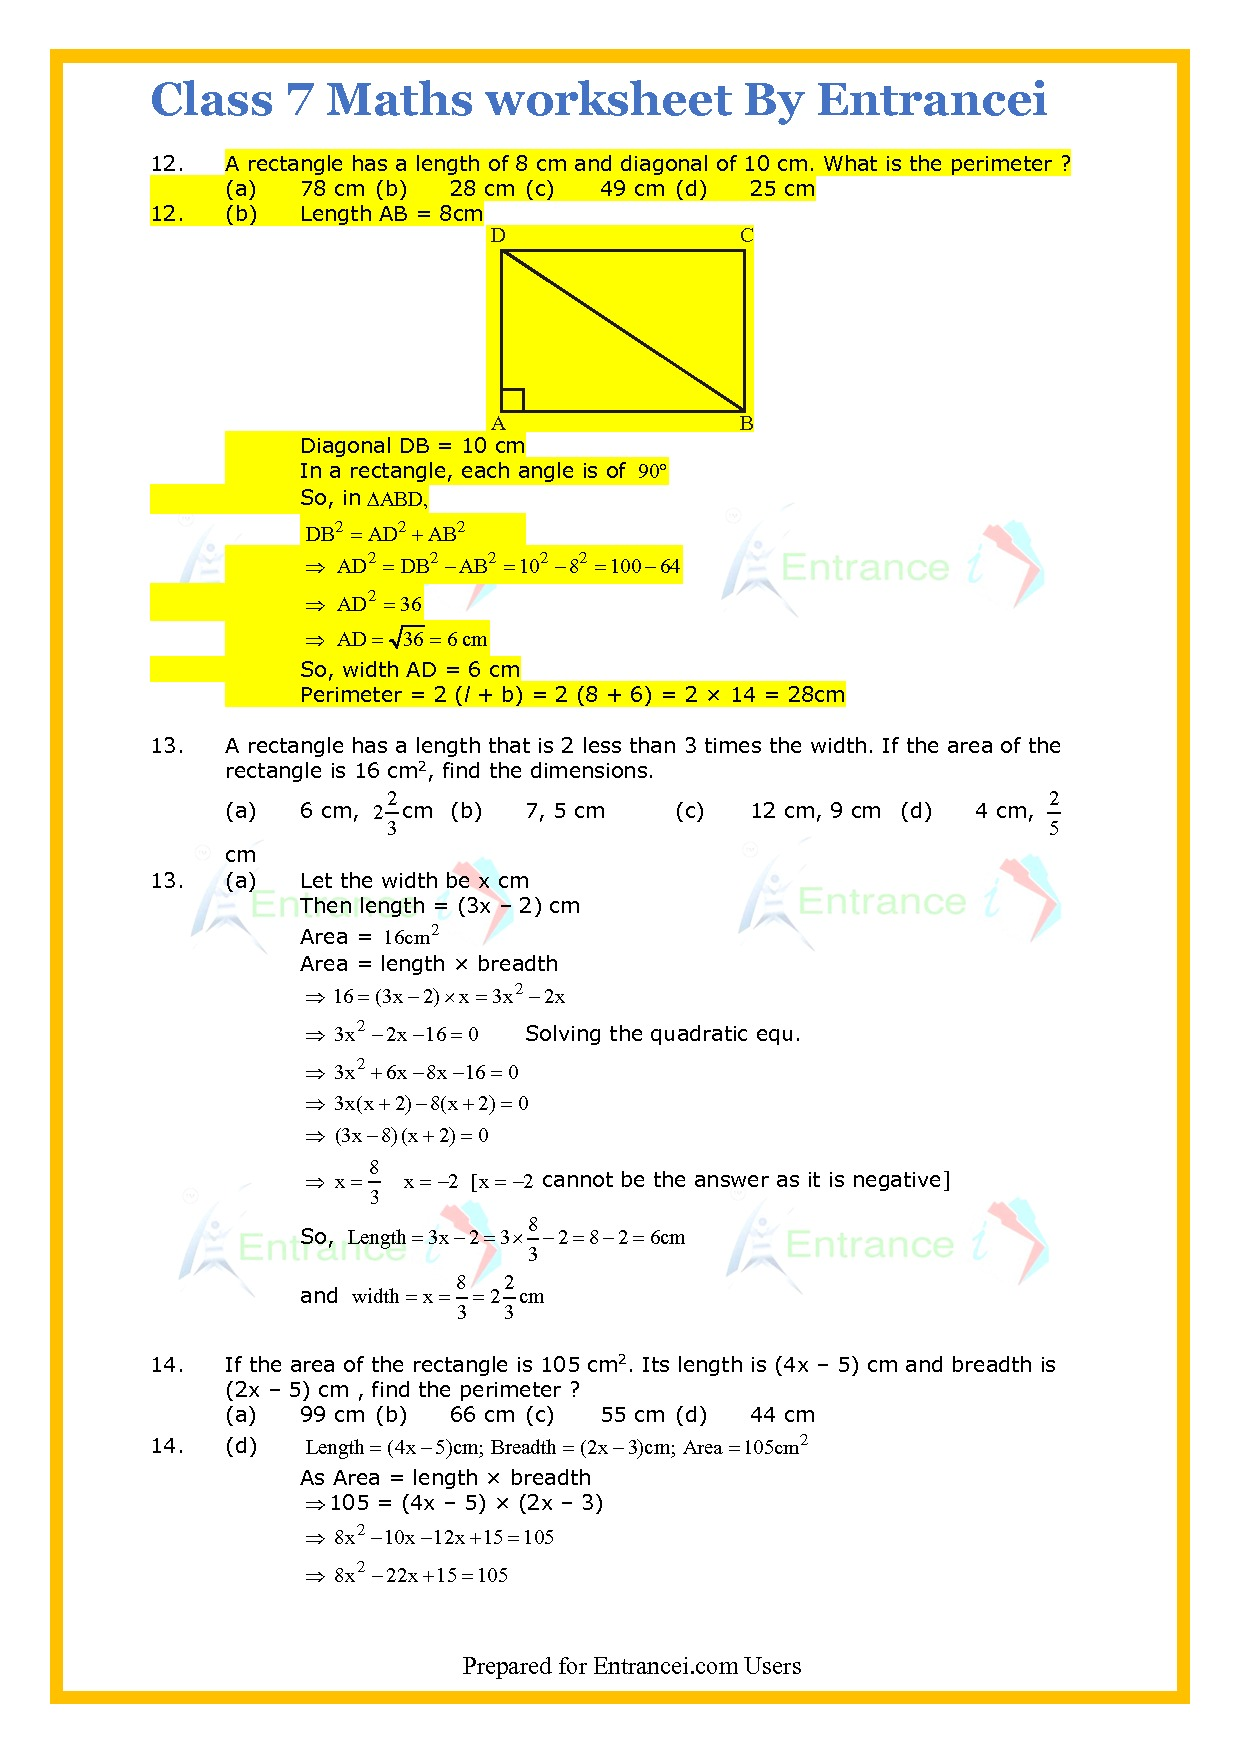 Cbse Class 7 Maths Worksheet For Chapter 11 Area And Perimeter